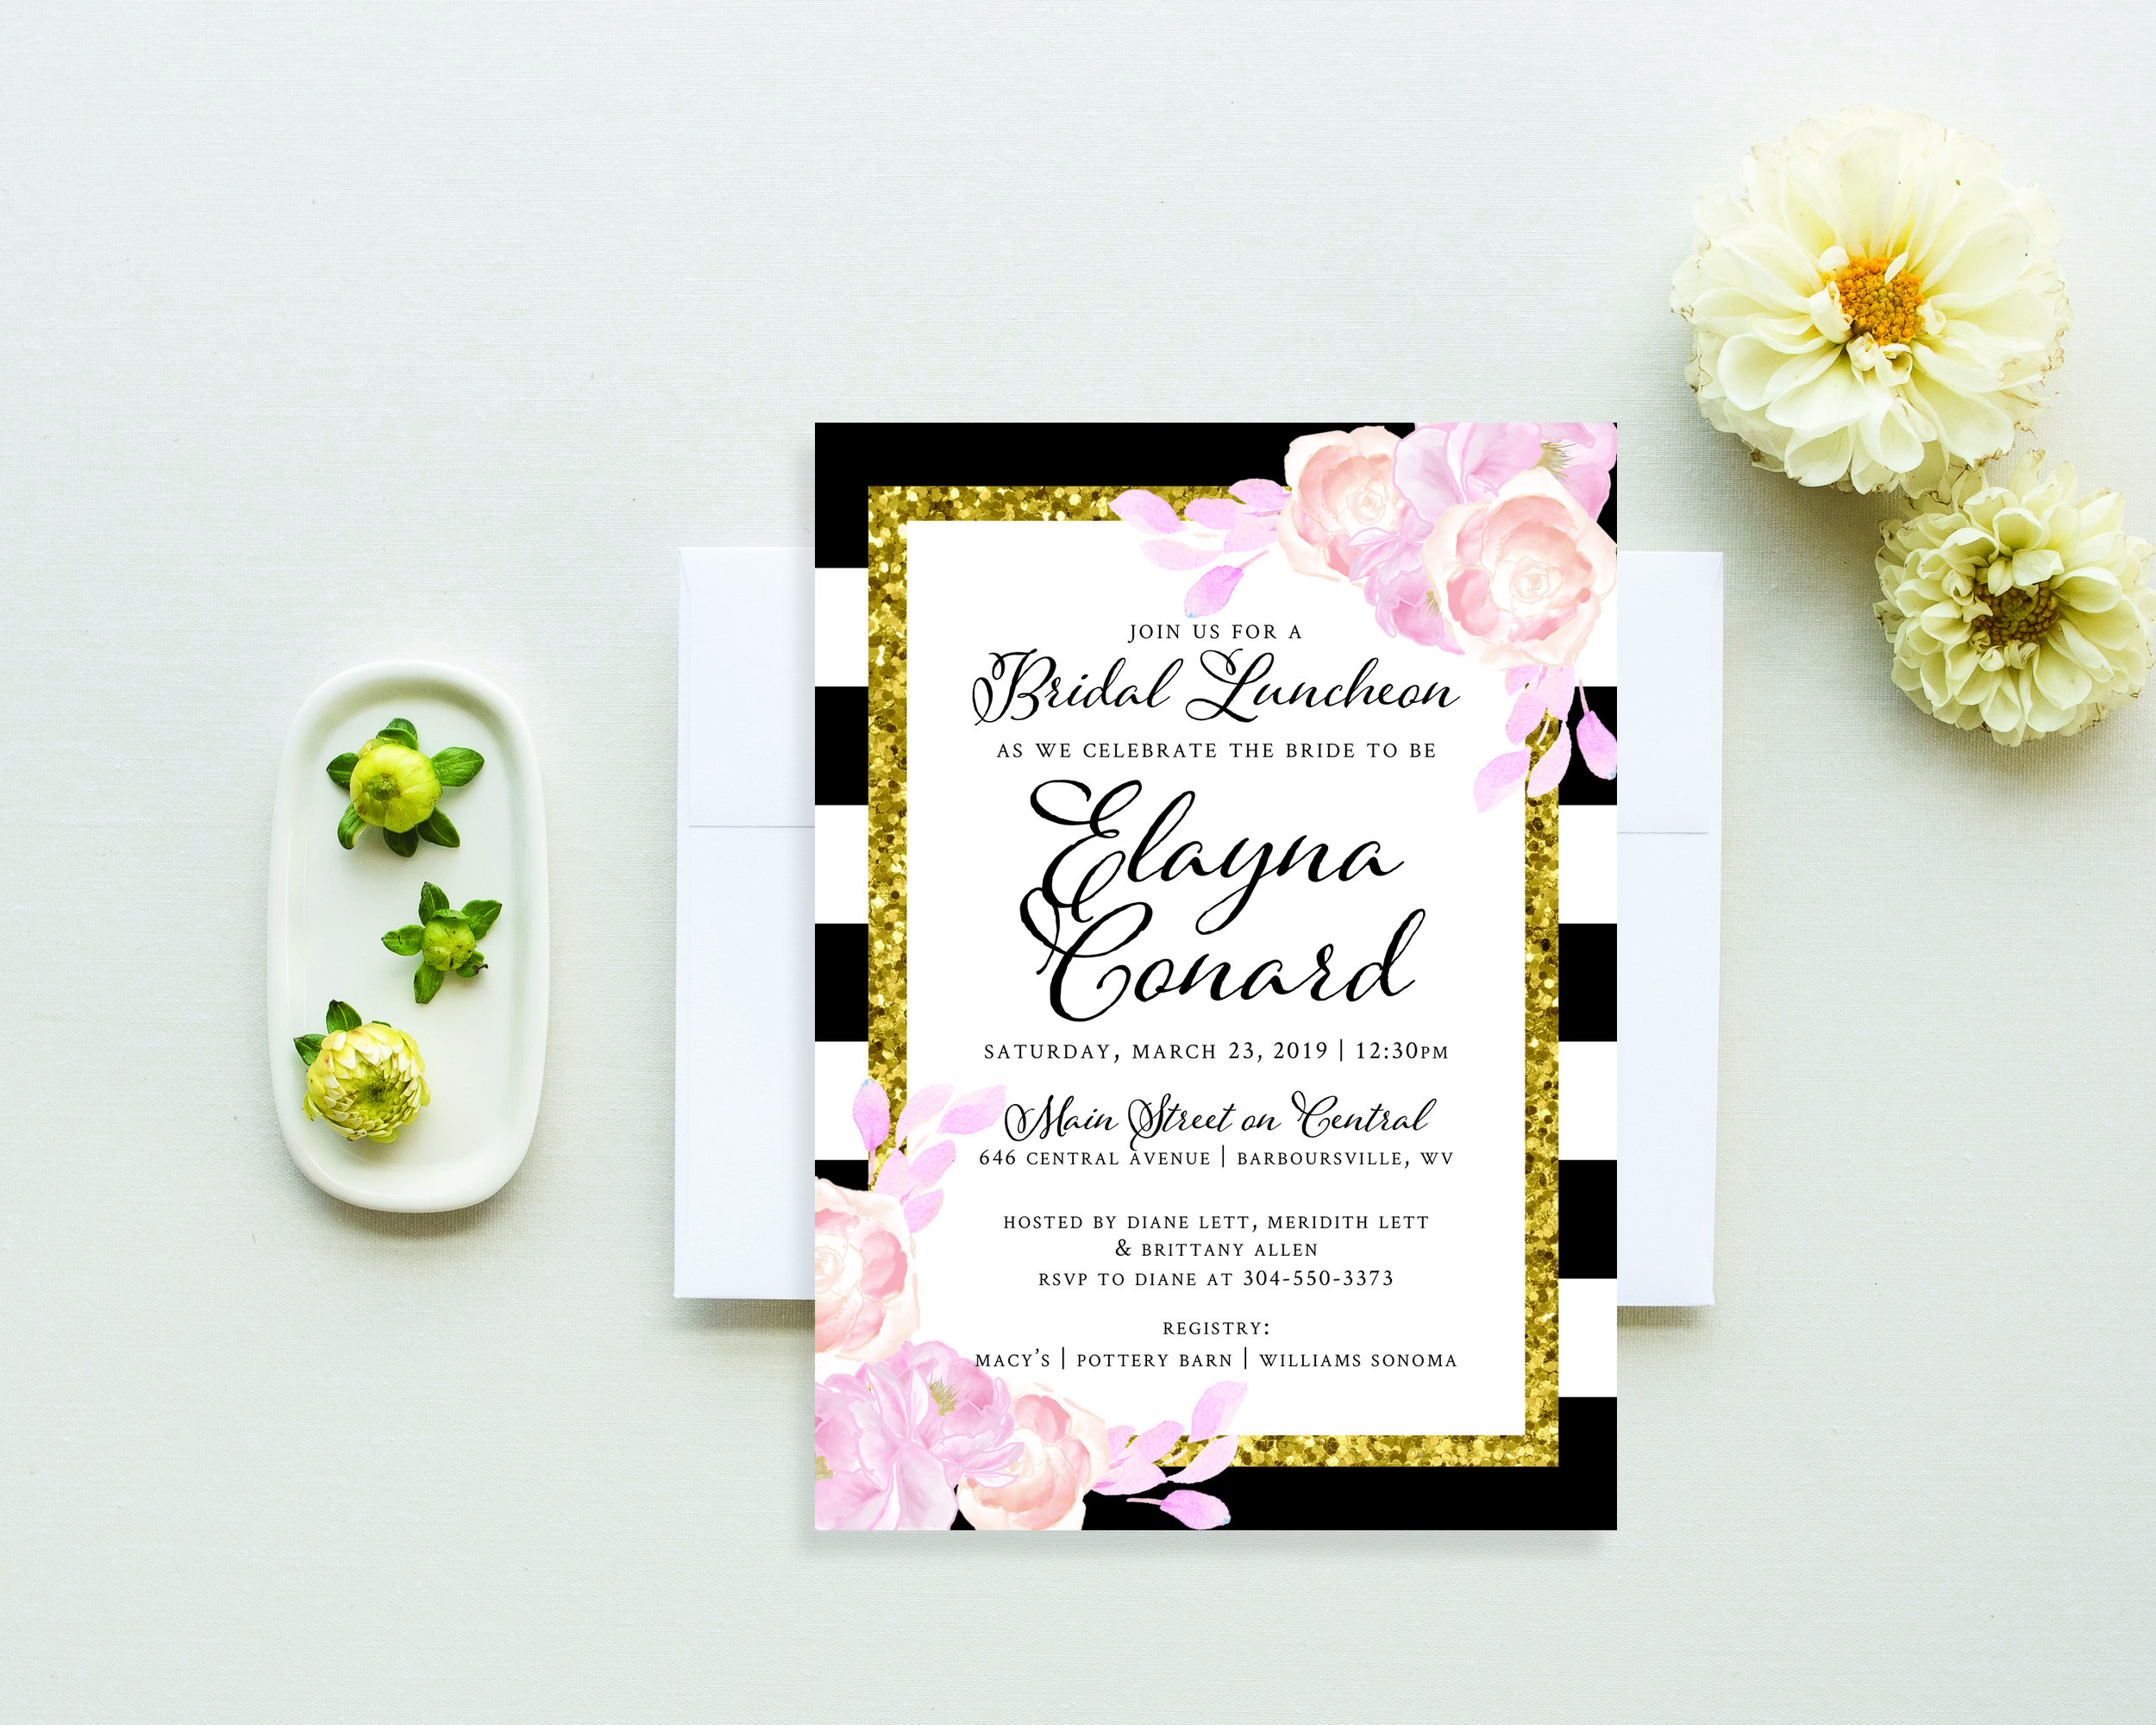 Bridal Shower Invitations - Shop our collection of bridal shower invitations